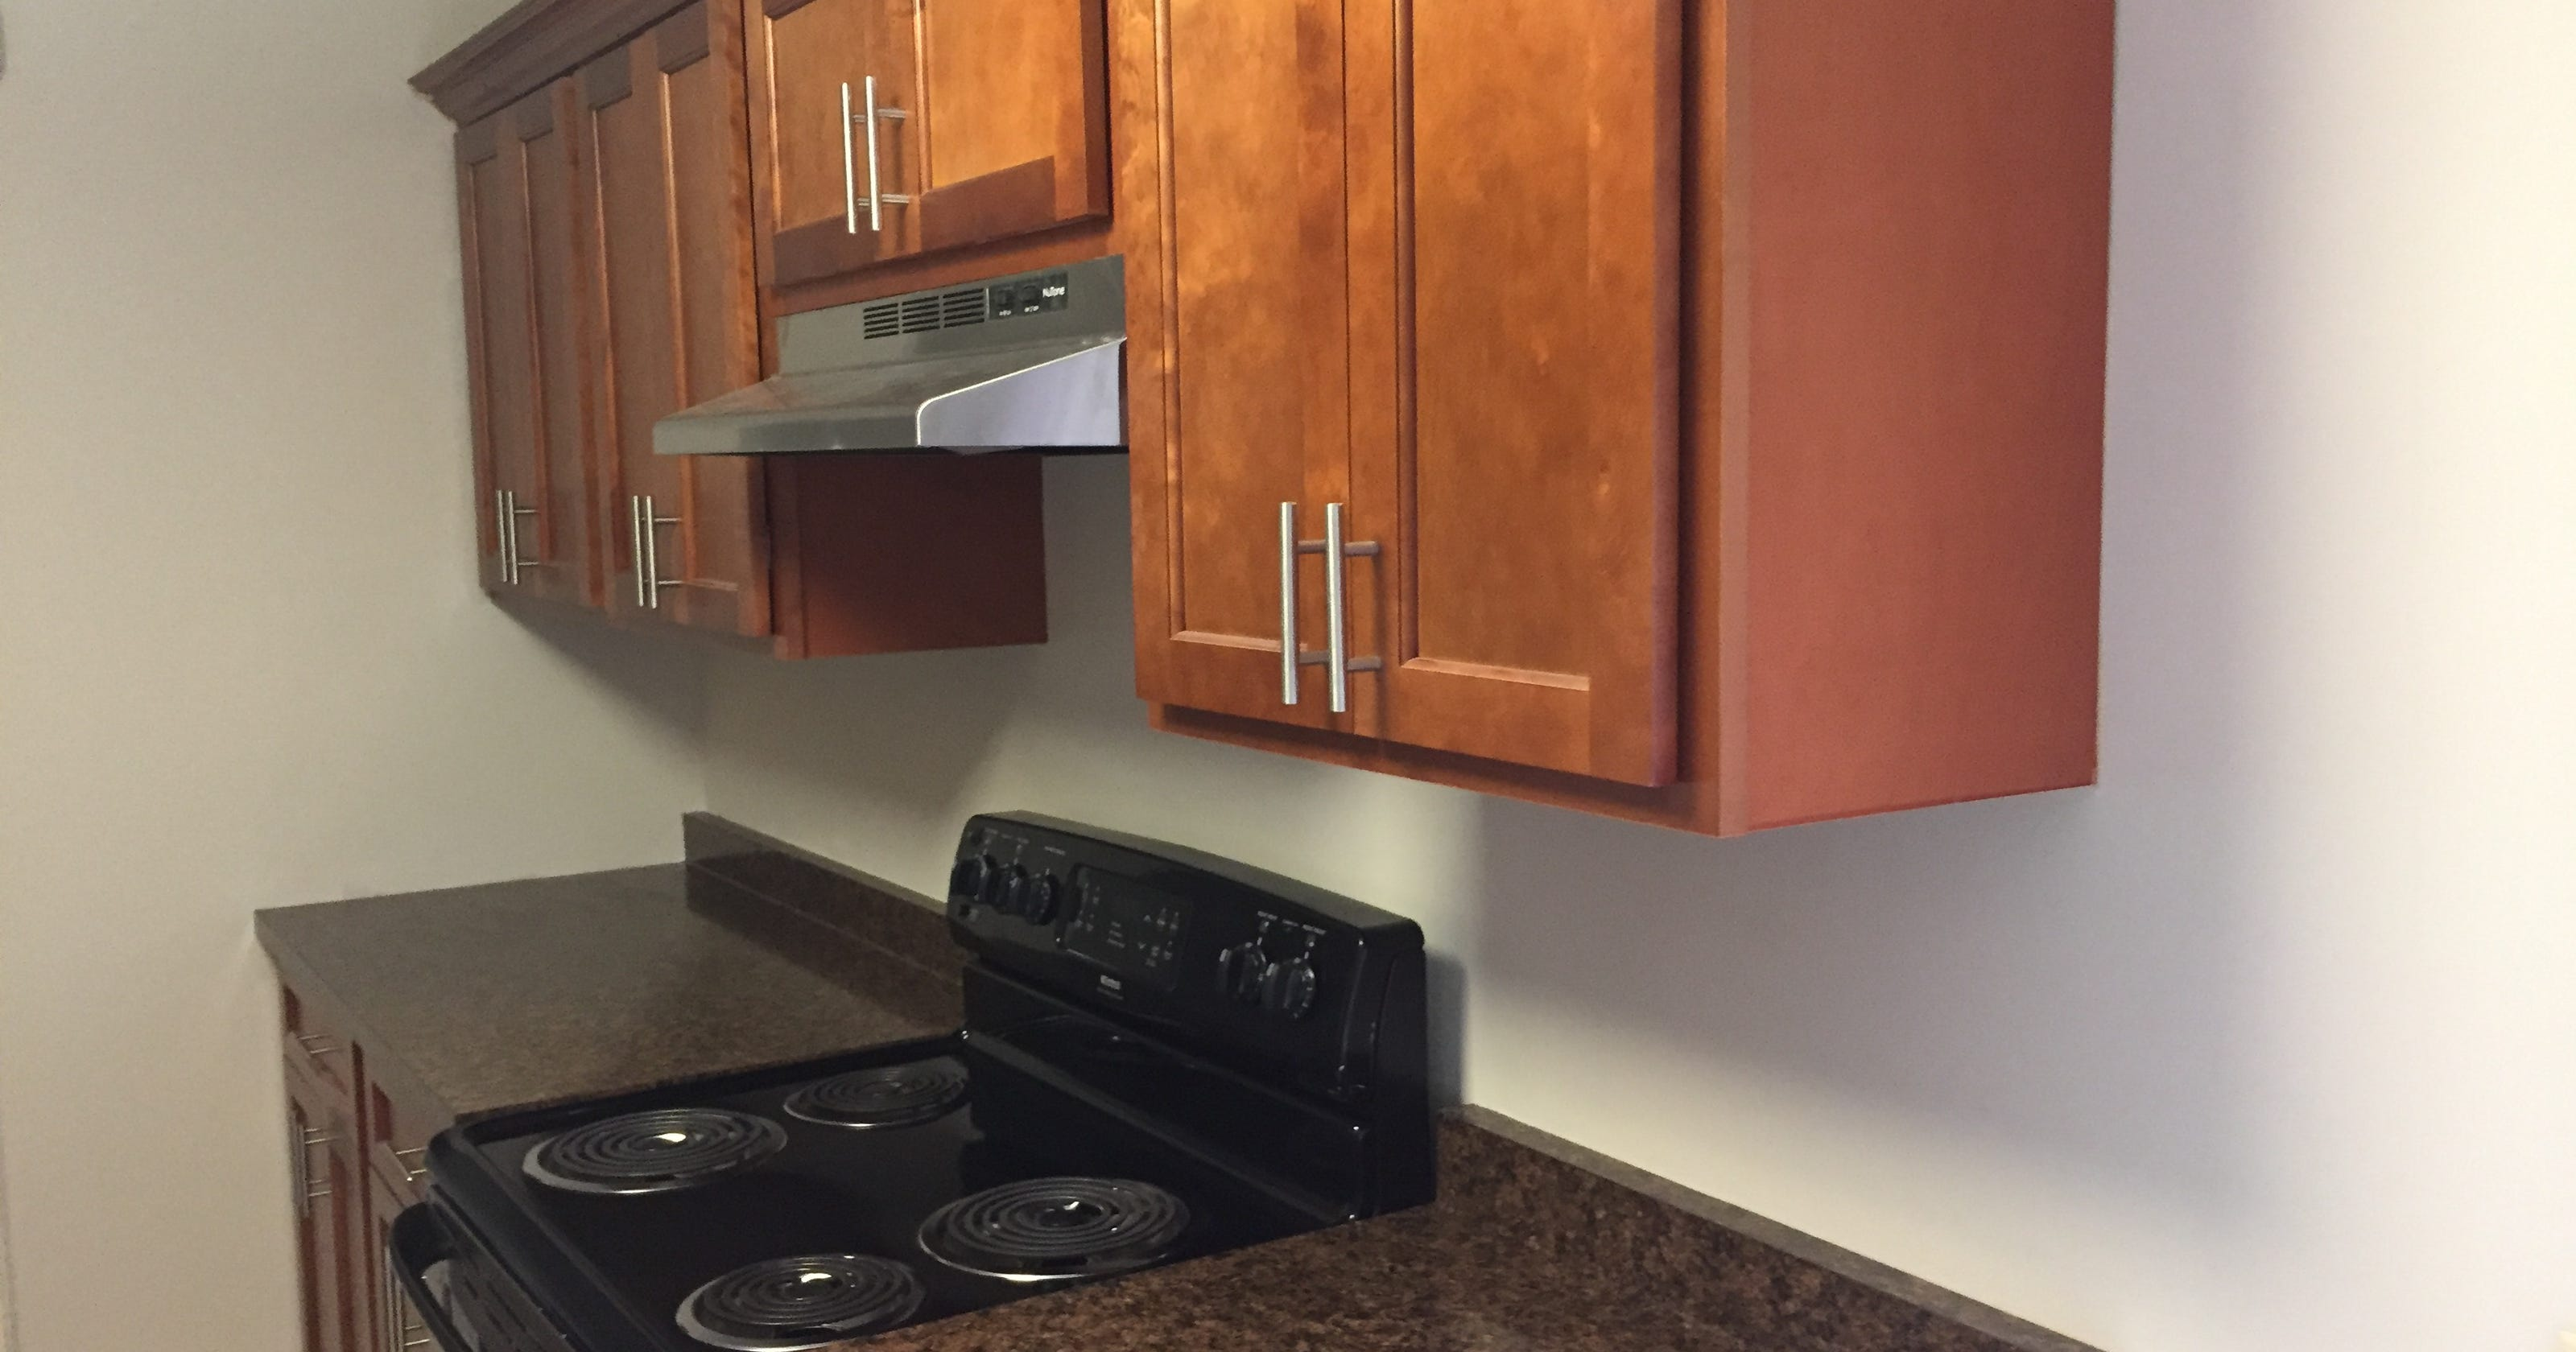 A New Kitchen For Less Than 7 000 And Other Ways To Remodel Your Home On The